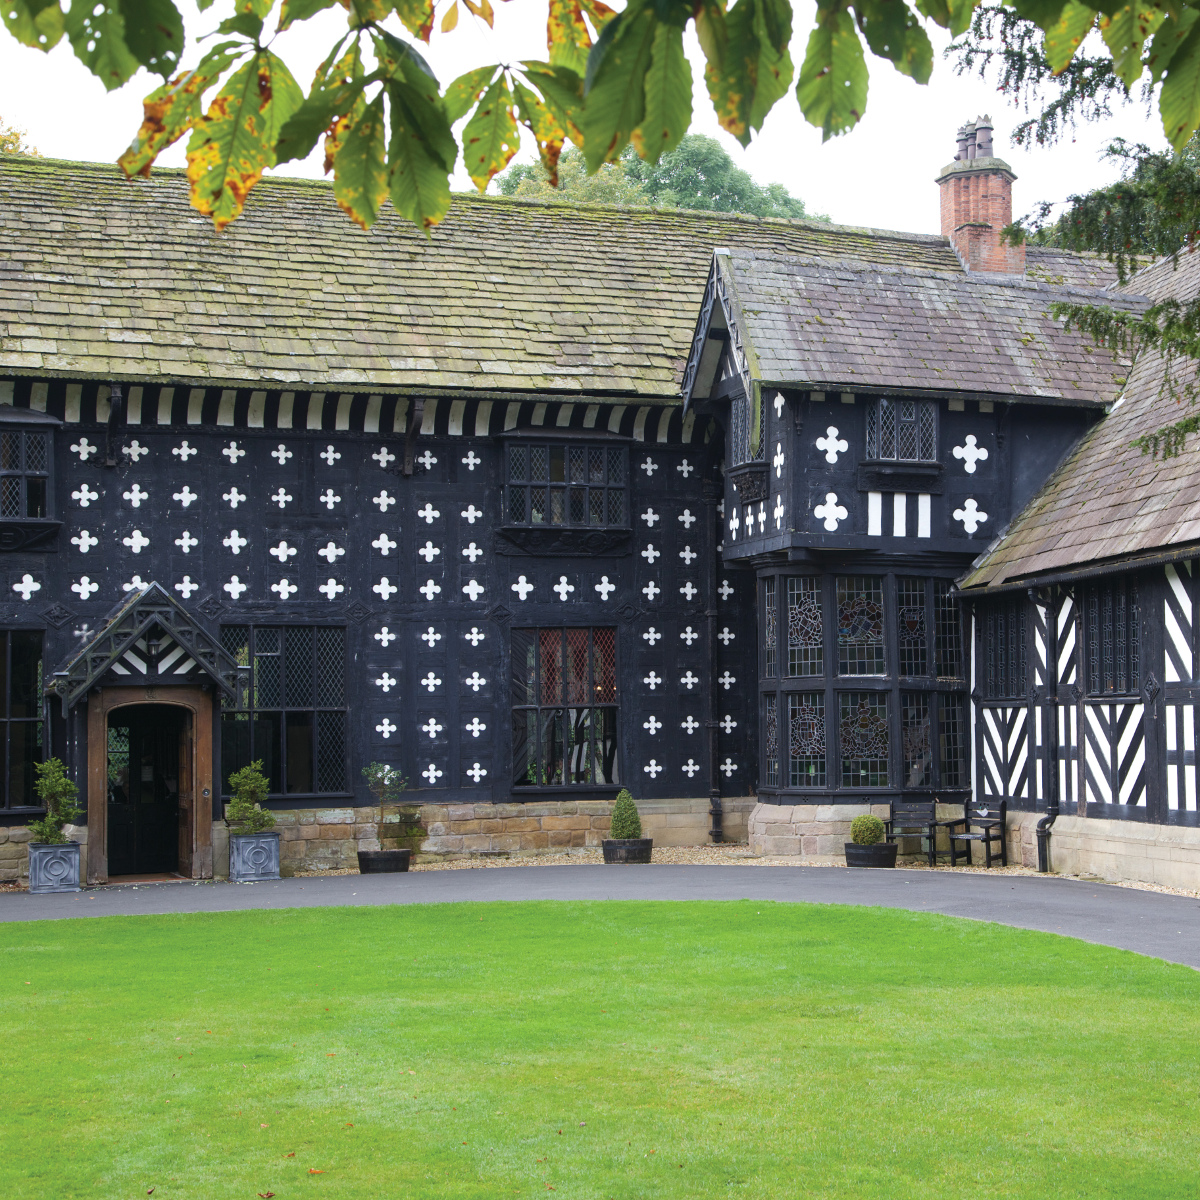 Samlesbury Hall, a Grade I listed medieval manor house, attracts more than 50,000 visitors each year.